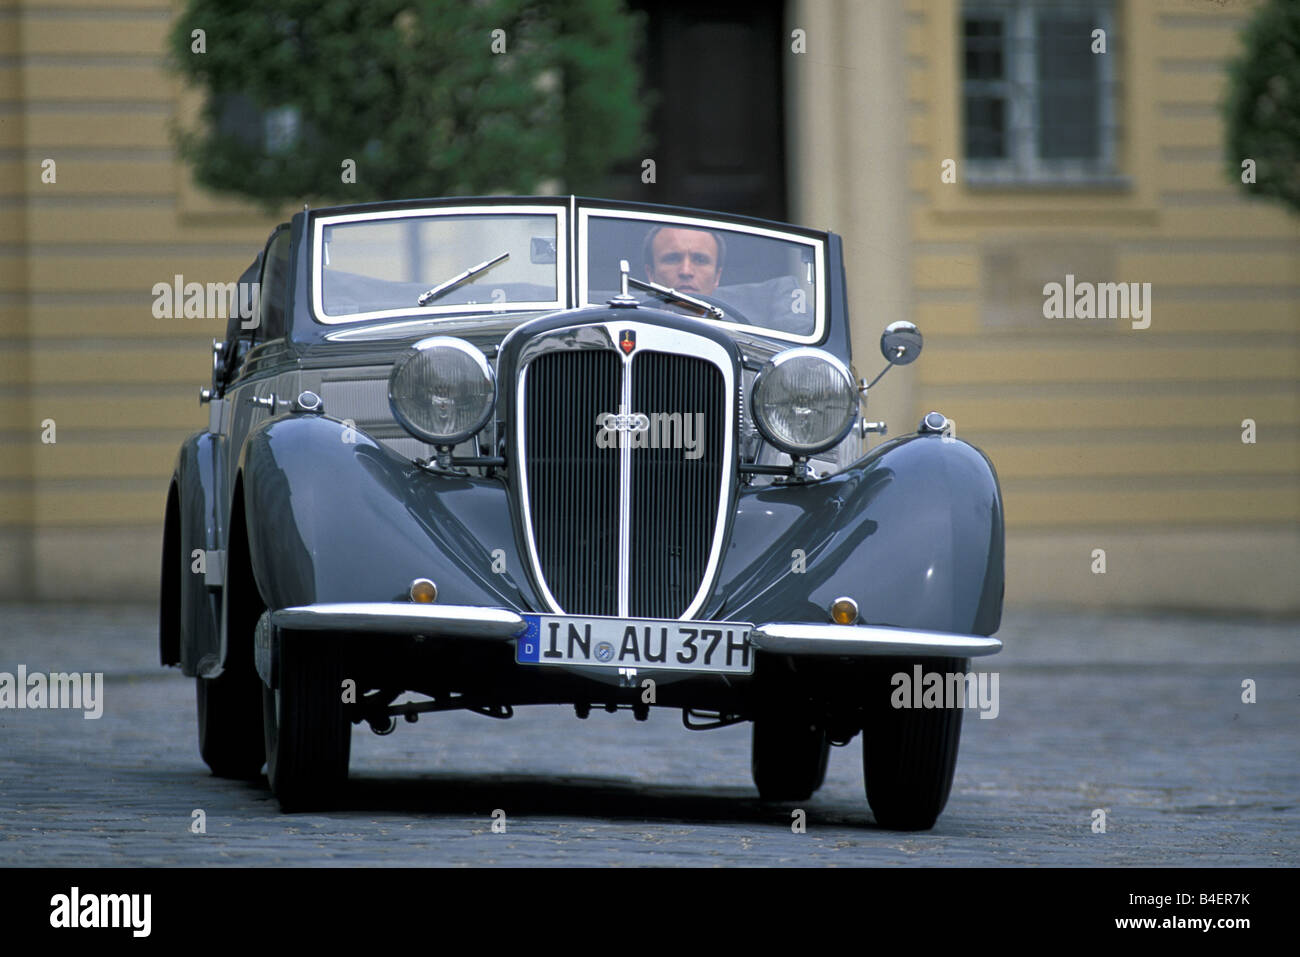 Audi 225 convertible, model year 1933-1938, grey, driving, diagonal front, front view, city, landscape, scenery Stock Photo